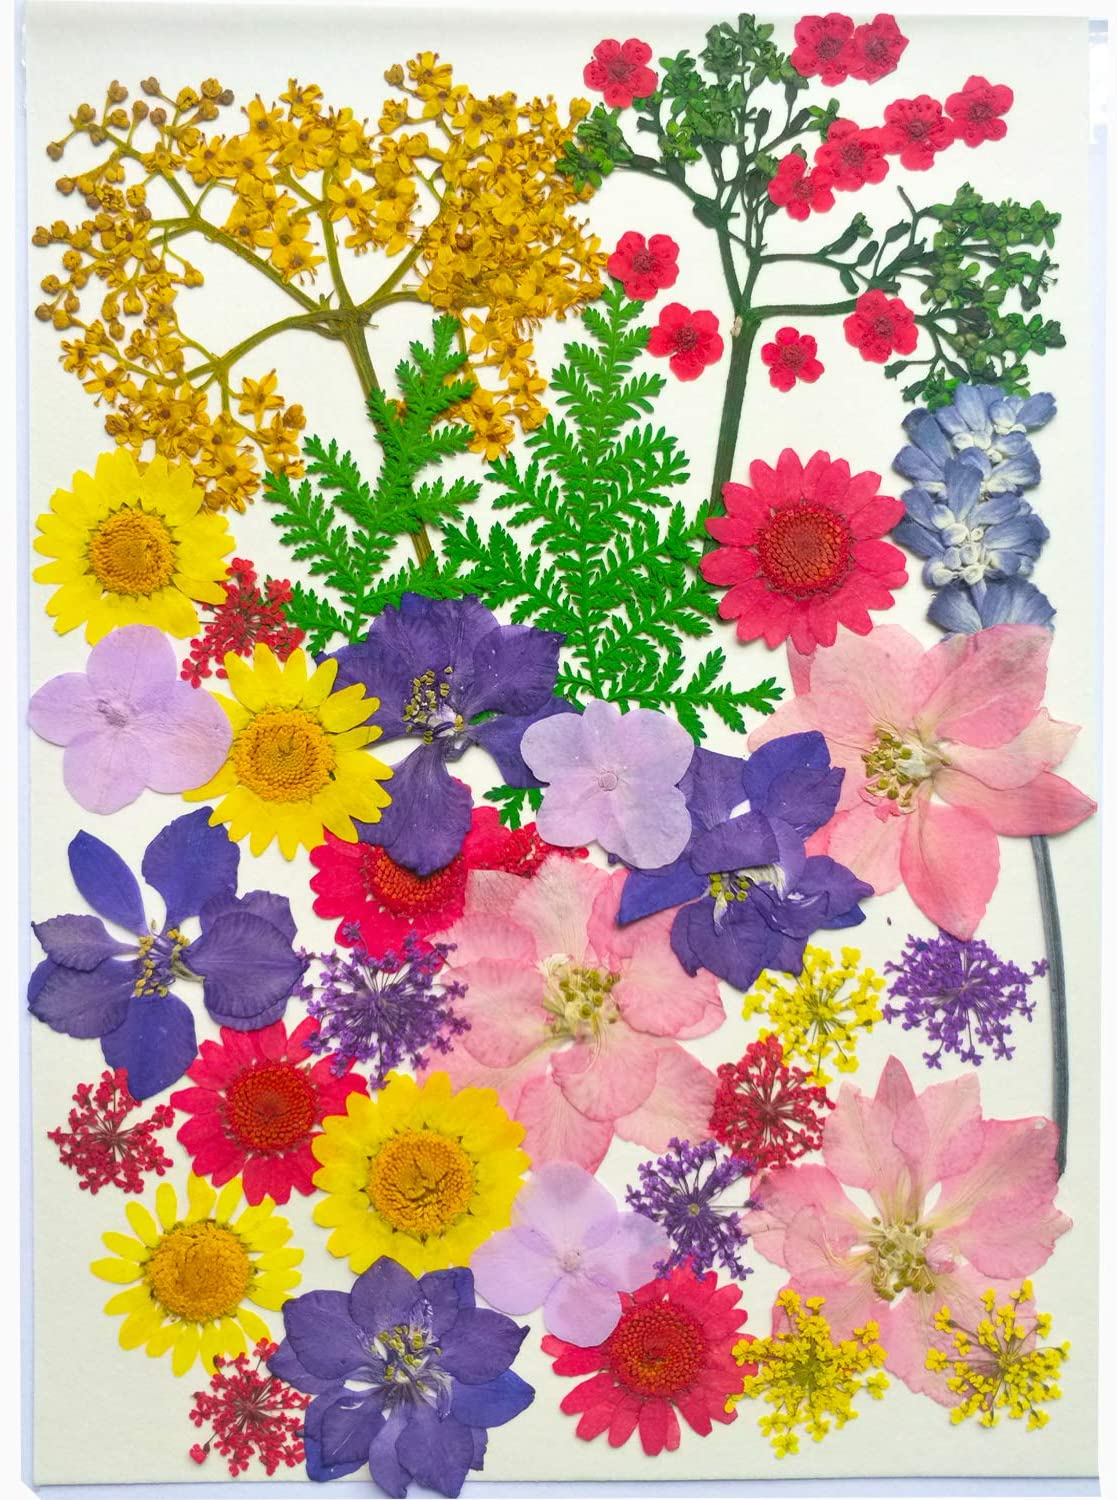 Natural Real Dried Pressed Flowers Leaves for Resin Jewelry Nail Art Crafts Candle Making, Multi-Variety Colorful 44PCS